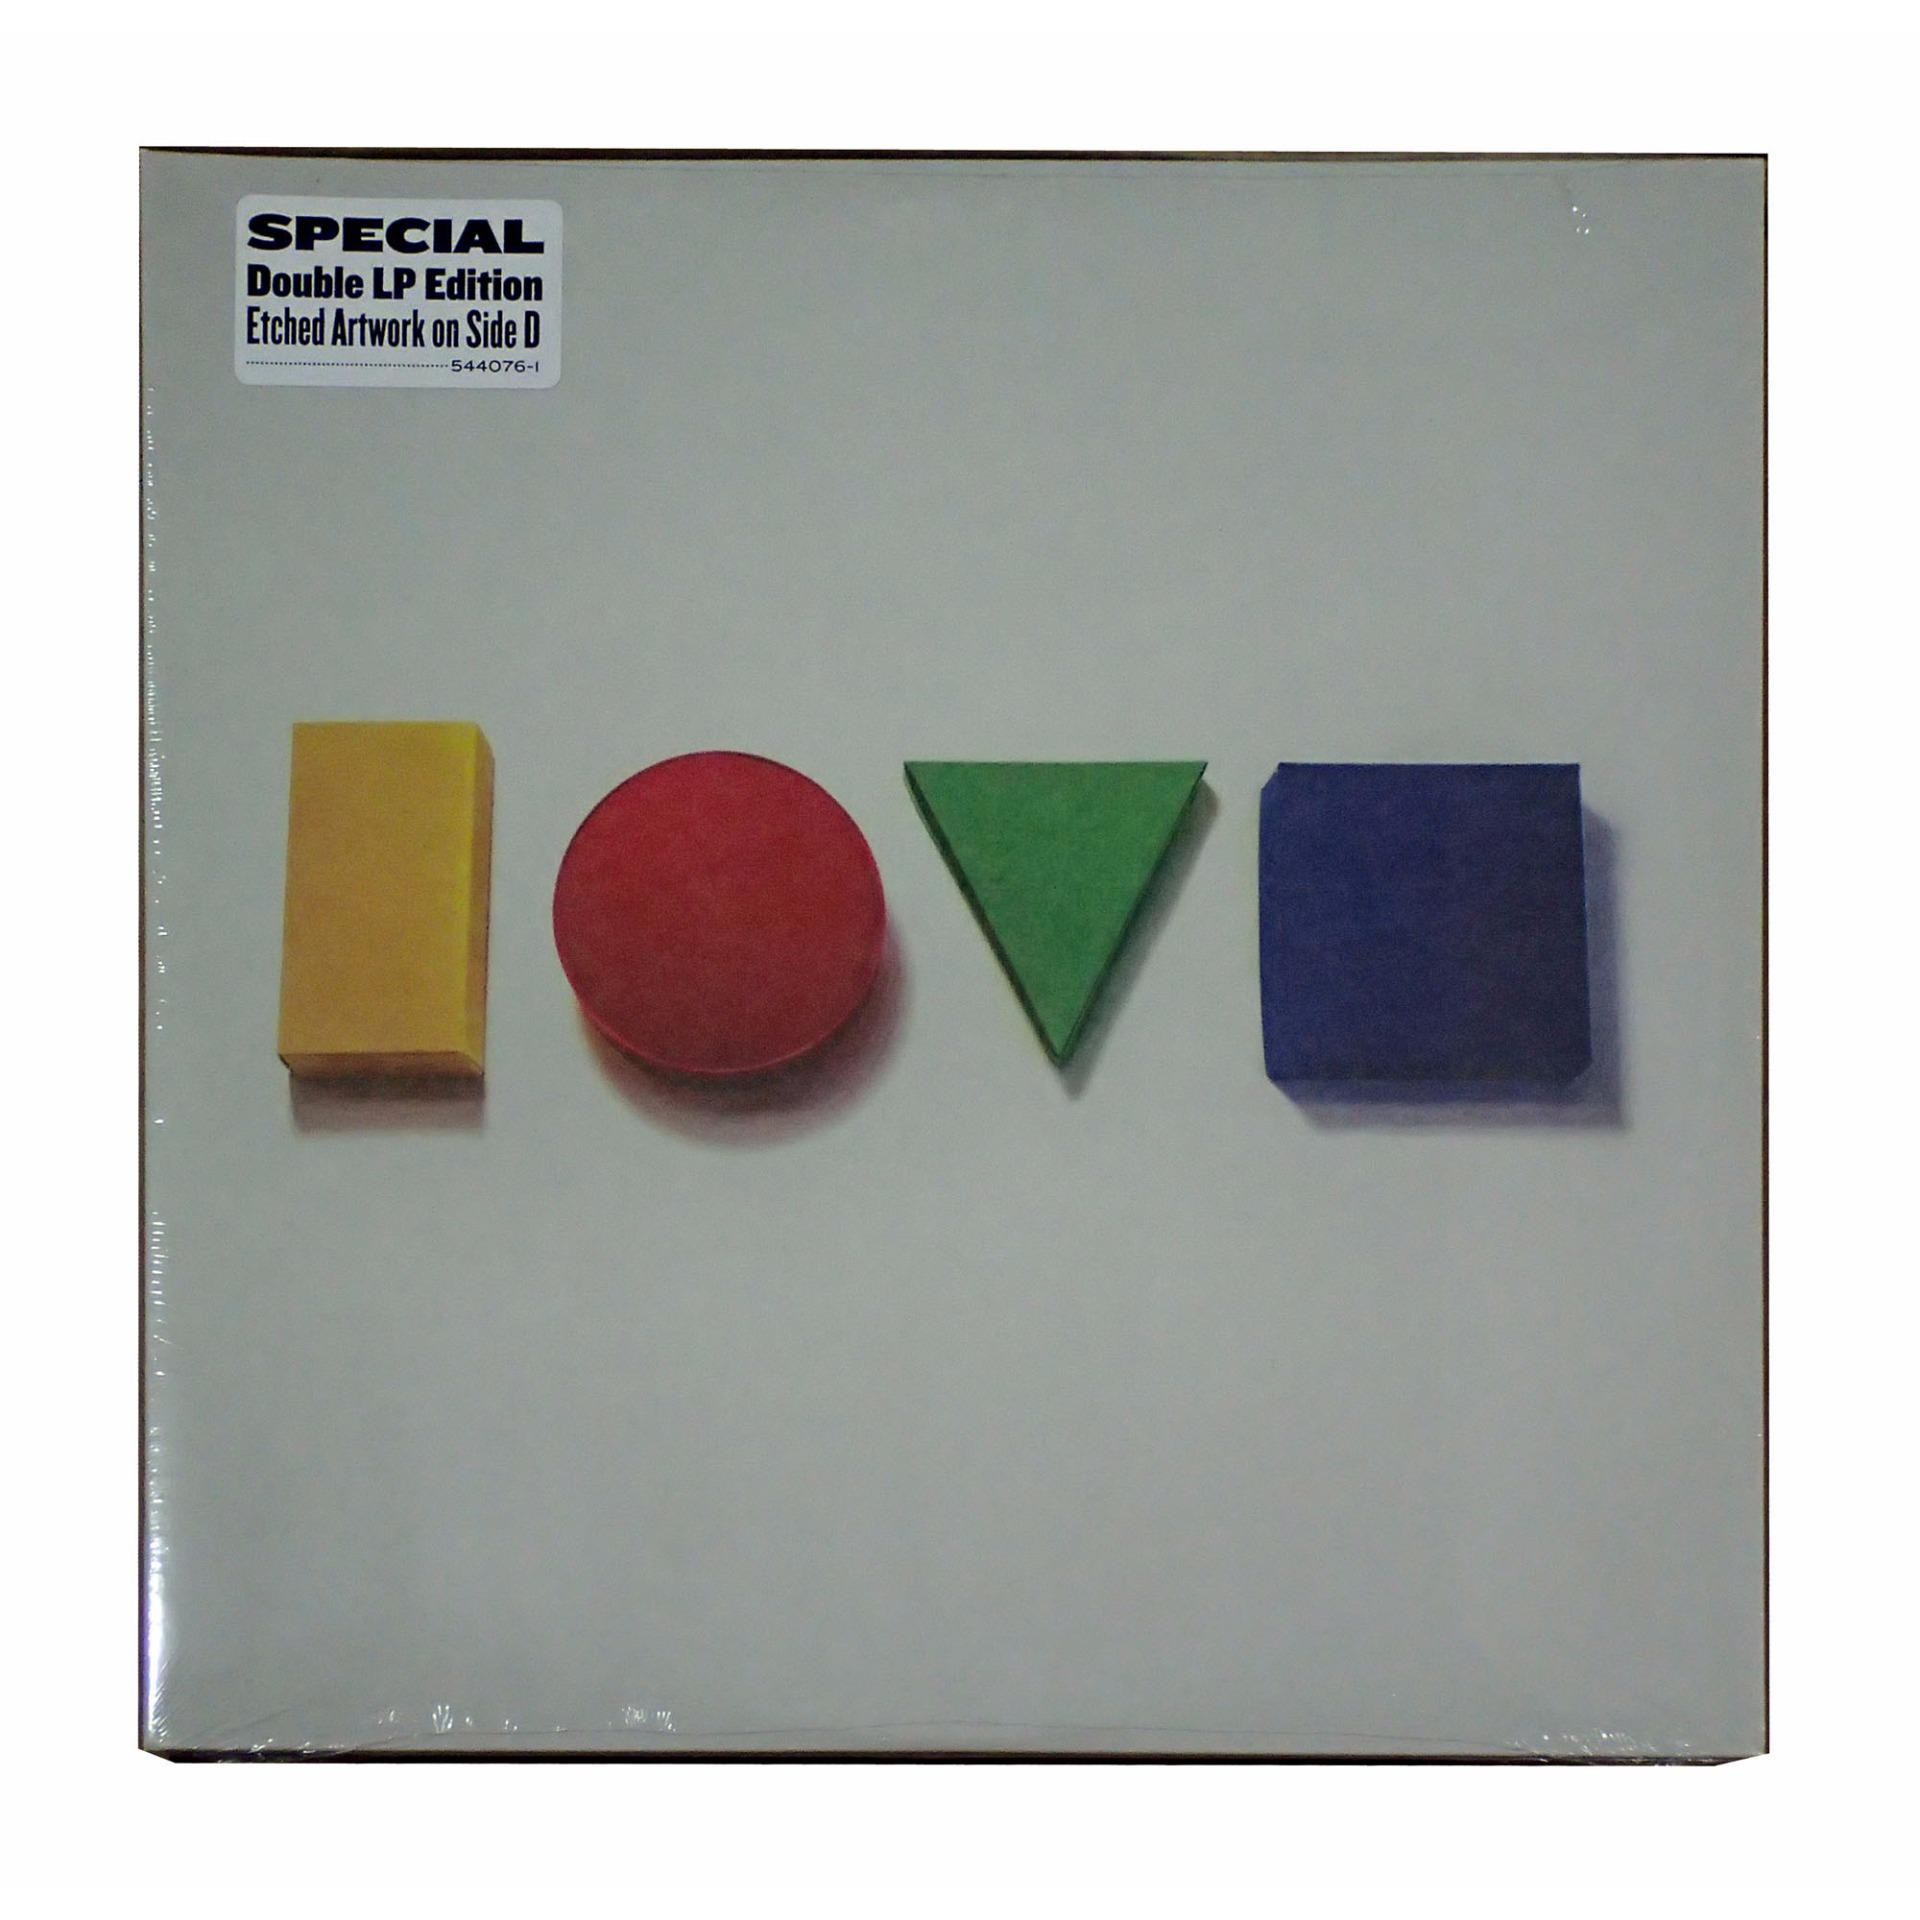 Philippines Love Is A Four Letter Word By Jason Mraz Vinyl Lp New